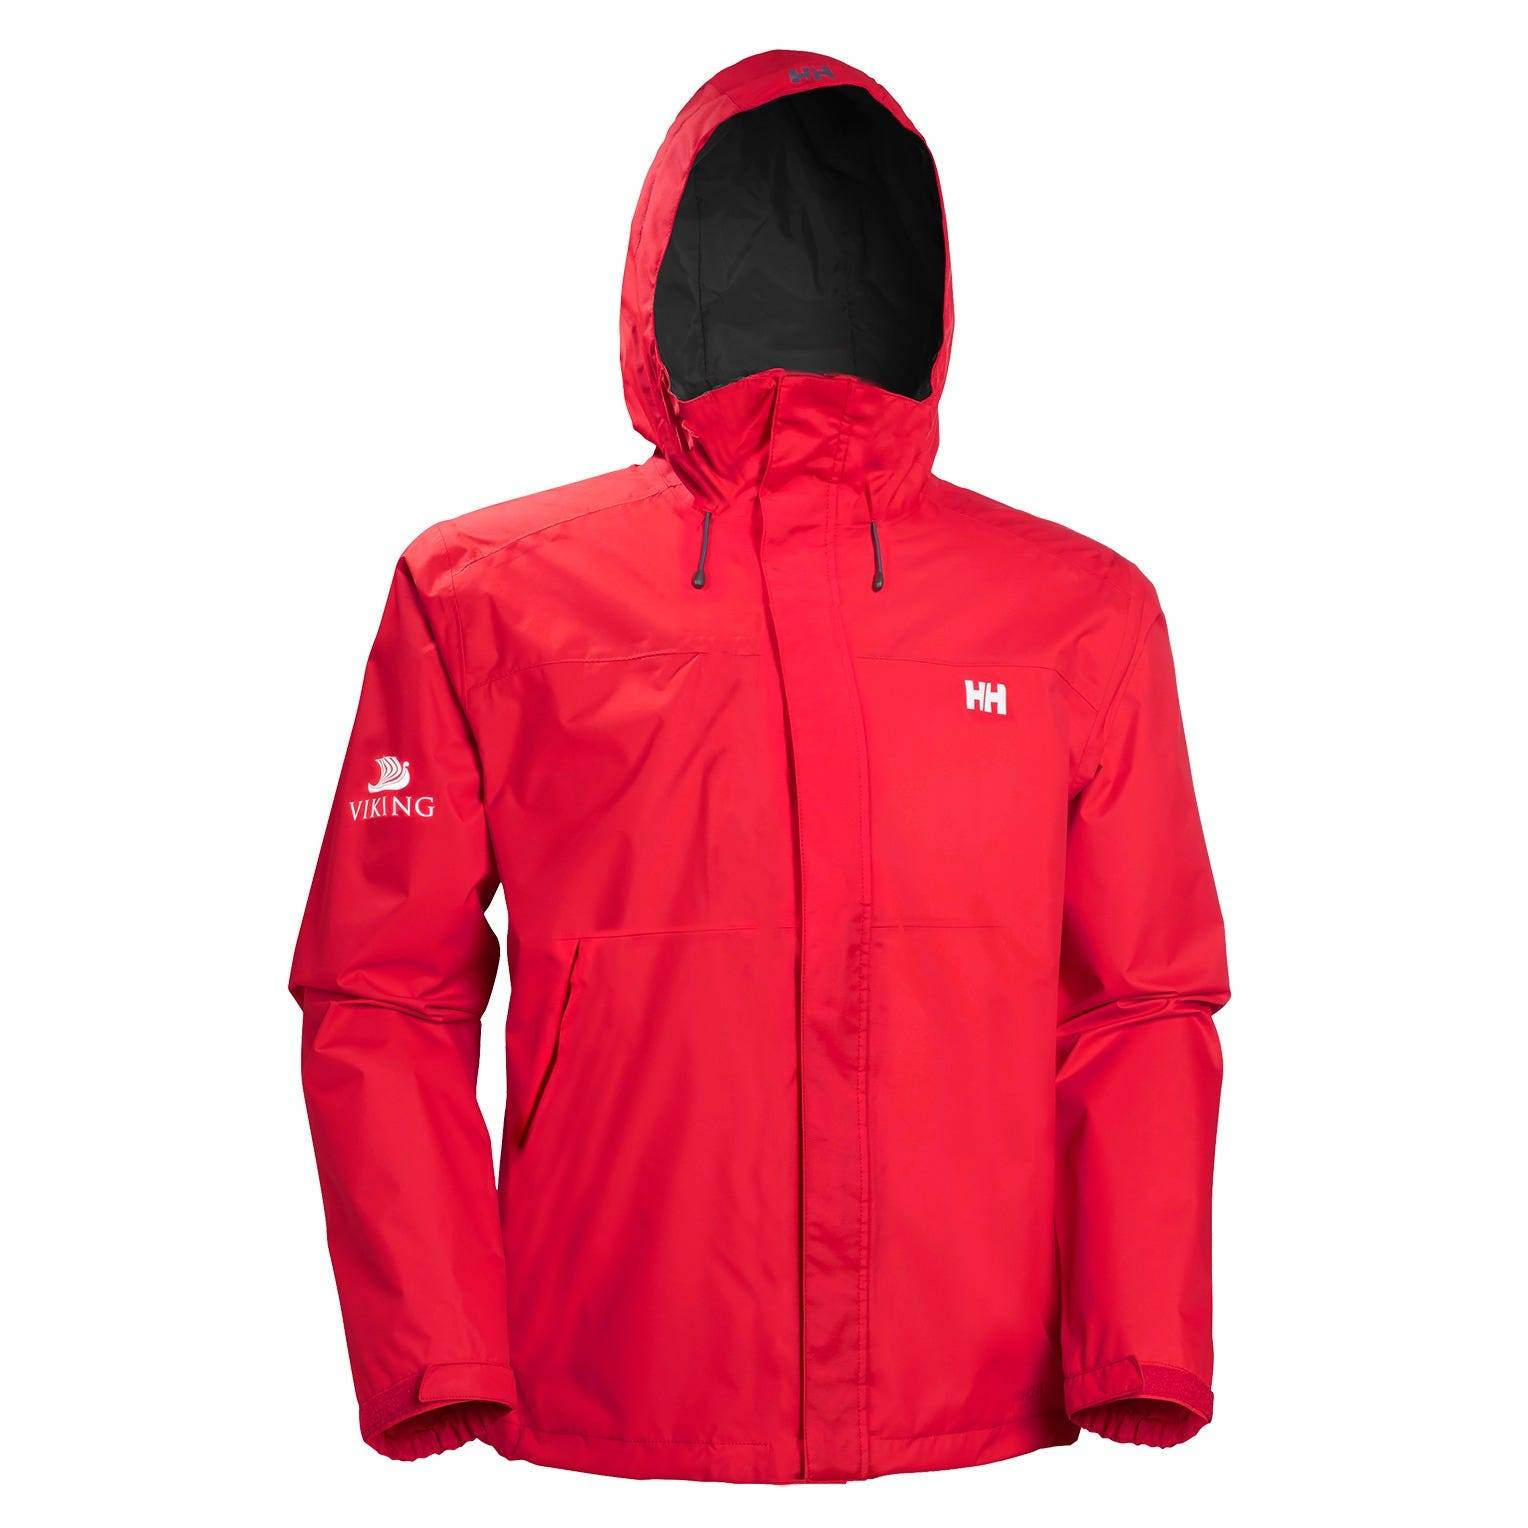 Helly Hansen Viking Cruises Vancouver Jacket Red L